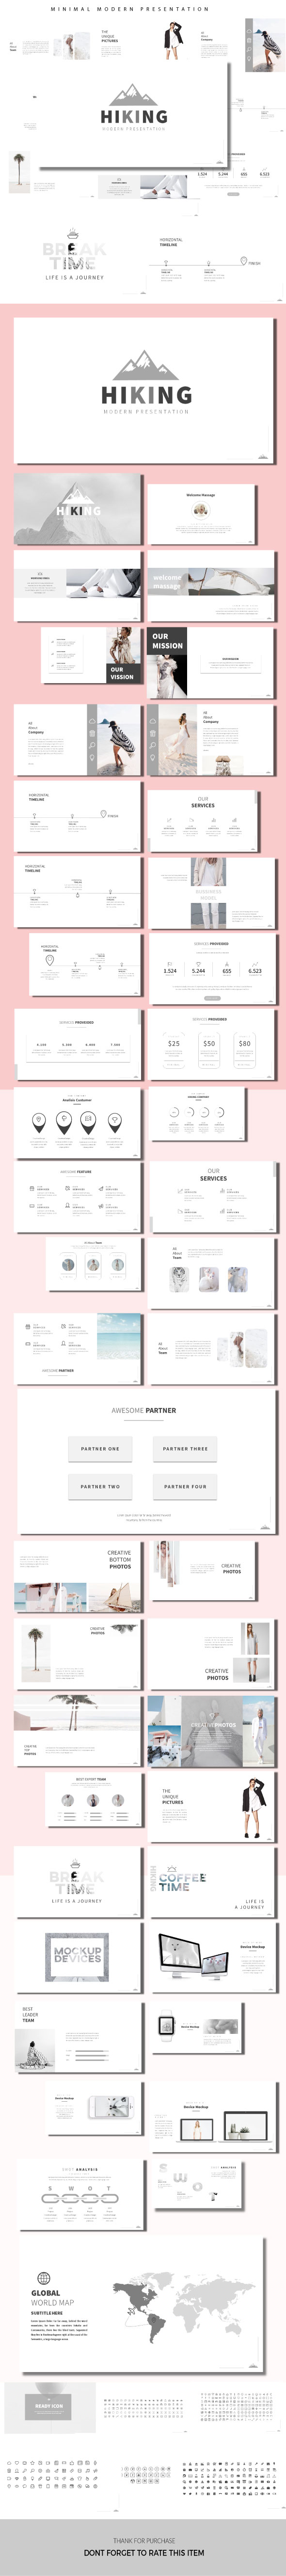 Hiking - Minimal Presentation Templates - PowerPoint Templates Presentation Templates